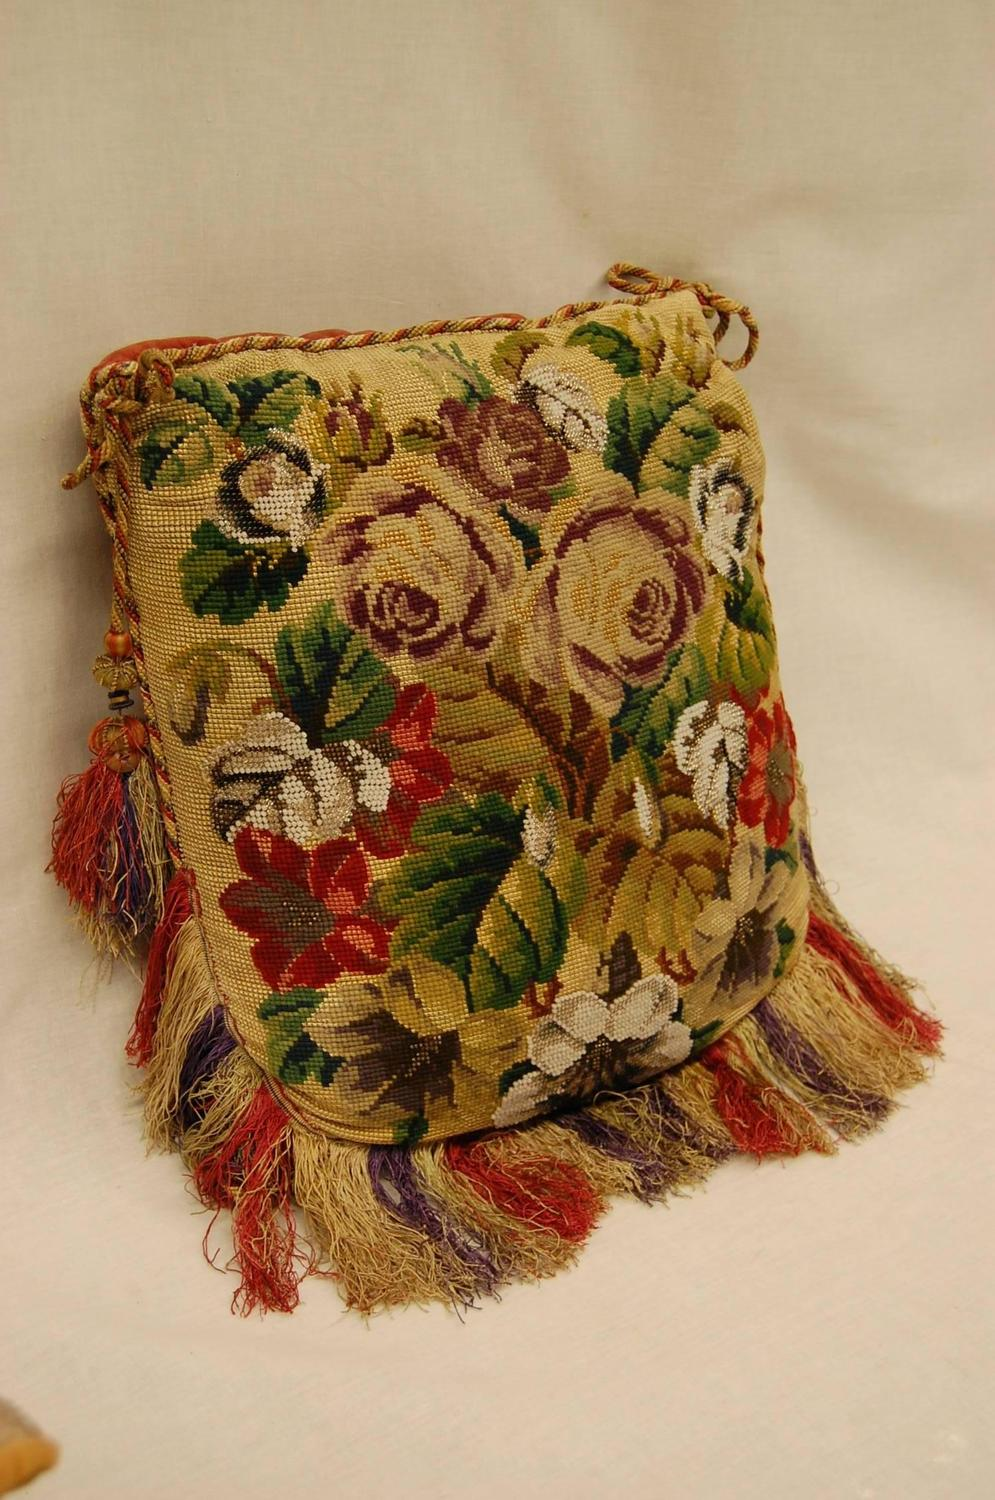 Victorian Tapestry Pillows : 19th Century Victorian Needlepoint and Glass Beaded Panel on a Pillow For Sale at 1stdibs